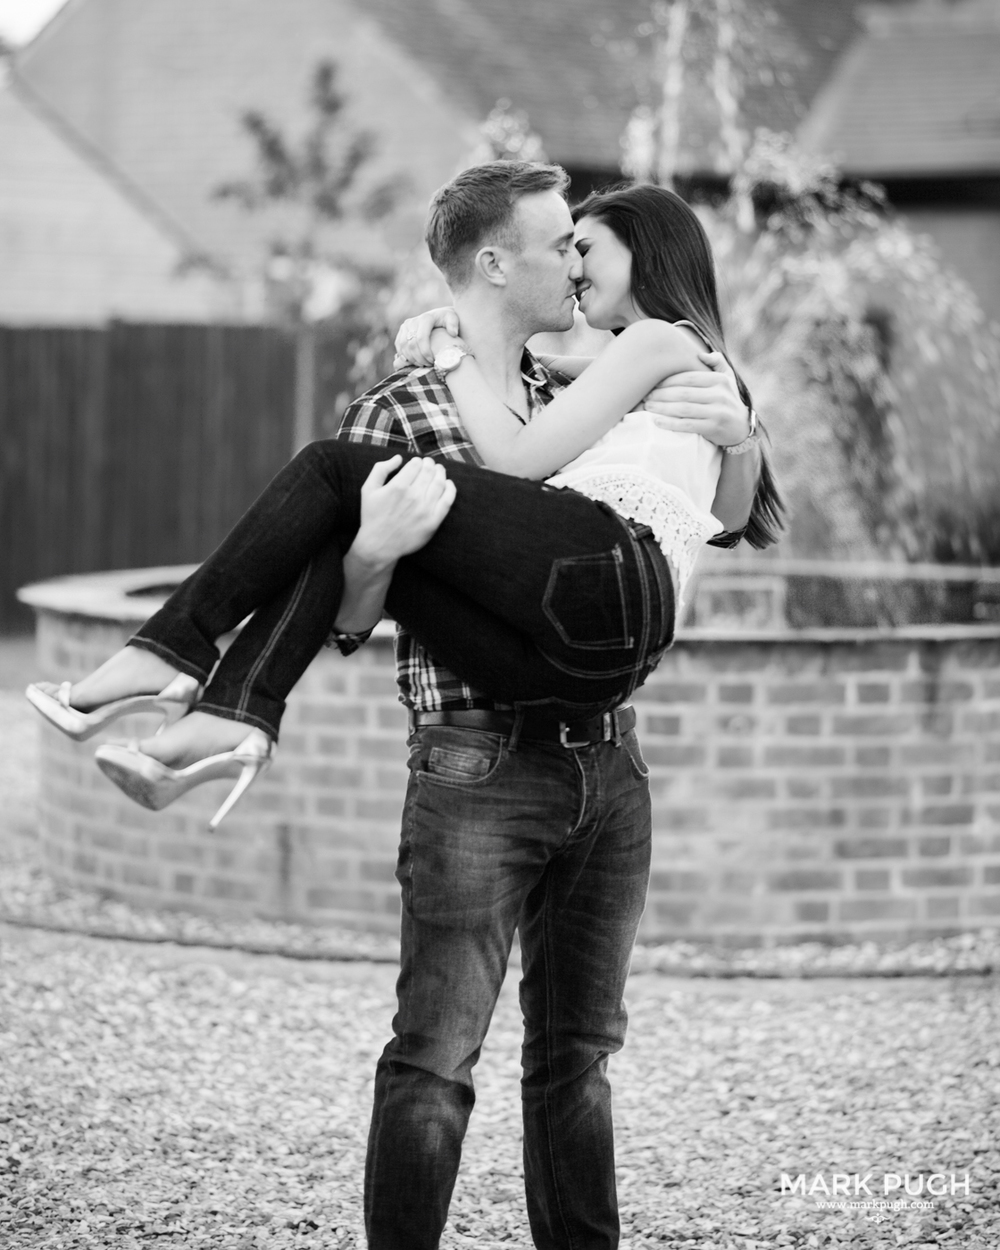 040 -  Jacqueline and Davids preWED love session at Kelham House Country Manor Hotel by www.markpugh.com - 0284.JPG